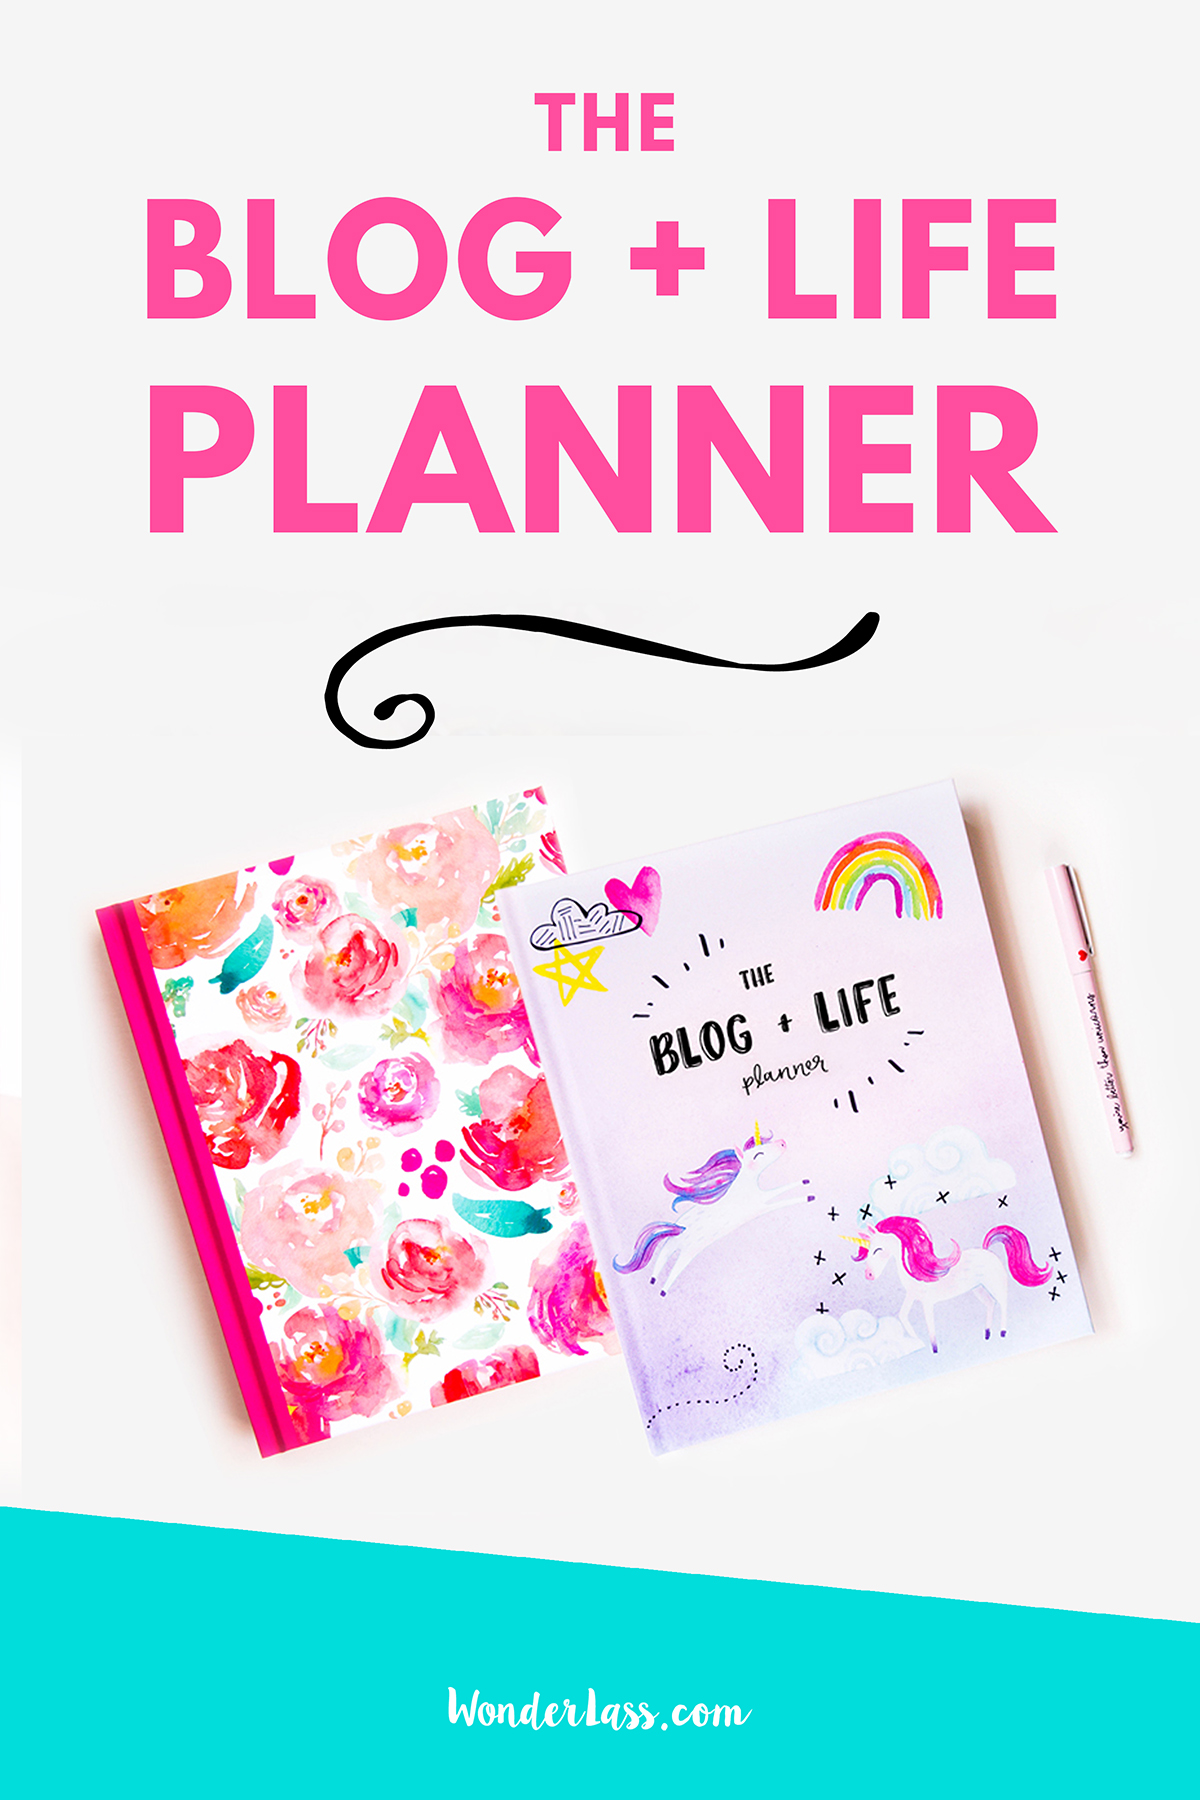 The Blog + Life Planner | Looking for the perfect blogging and online business planner? Check out the Blog + Life Planner for entrepreneurs! | Wonderlass